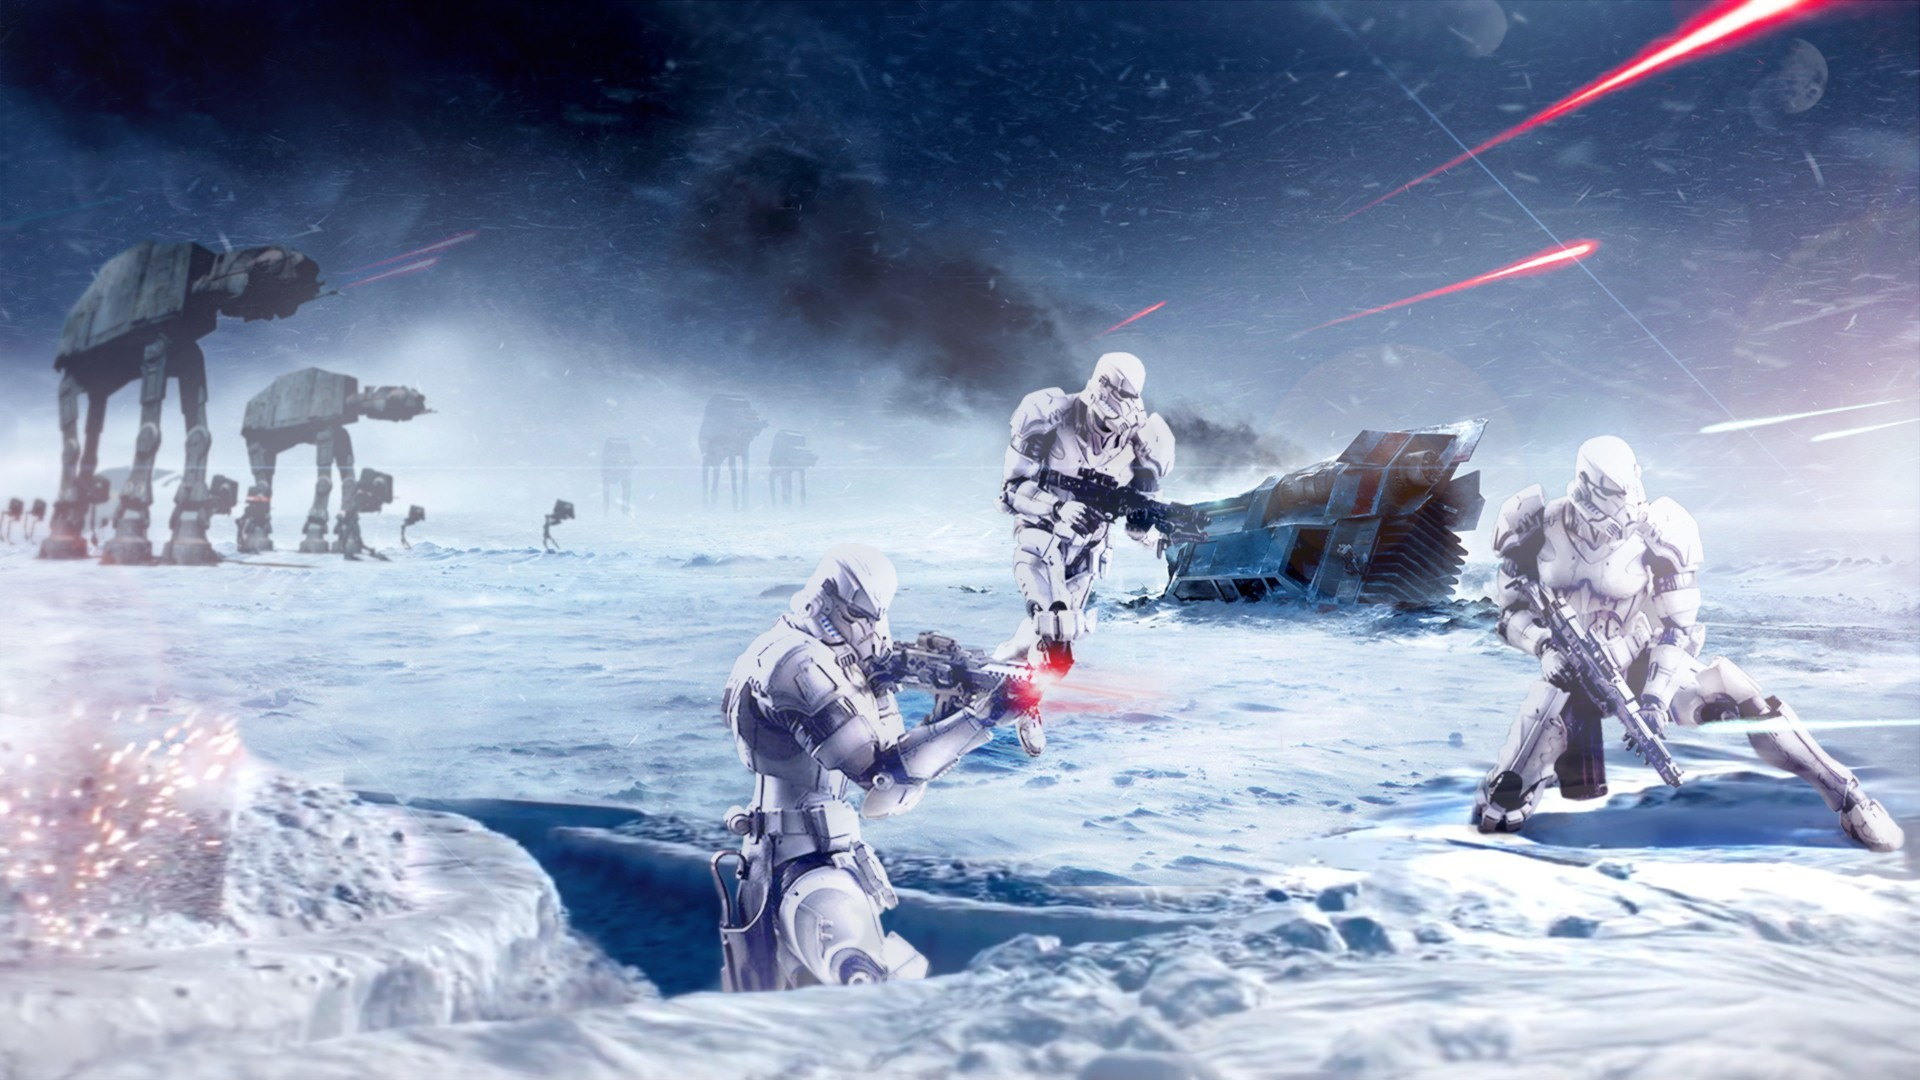 1920x1080 General  Star Wars stormtrooper Hoth Galactic Empire snow